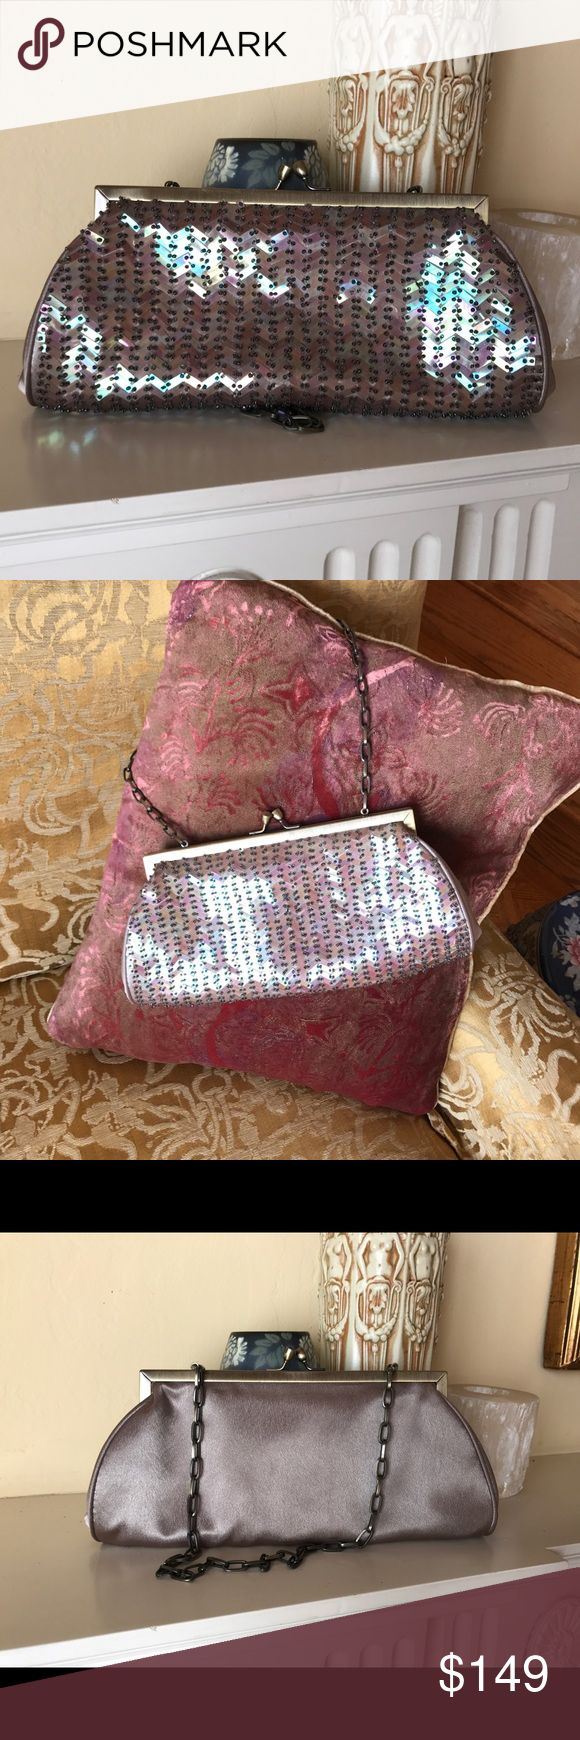 Drap Barcelona clutch Sparkles and satin. Neutral color. No beads missing Drap of Barcelona Bags Clutches & Wristlets